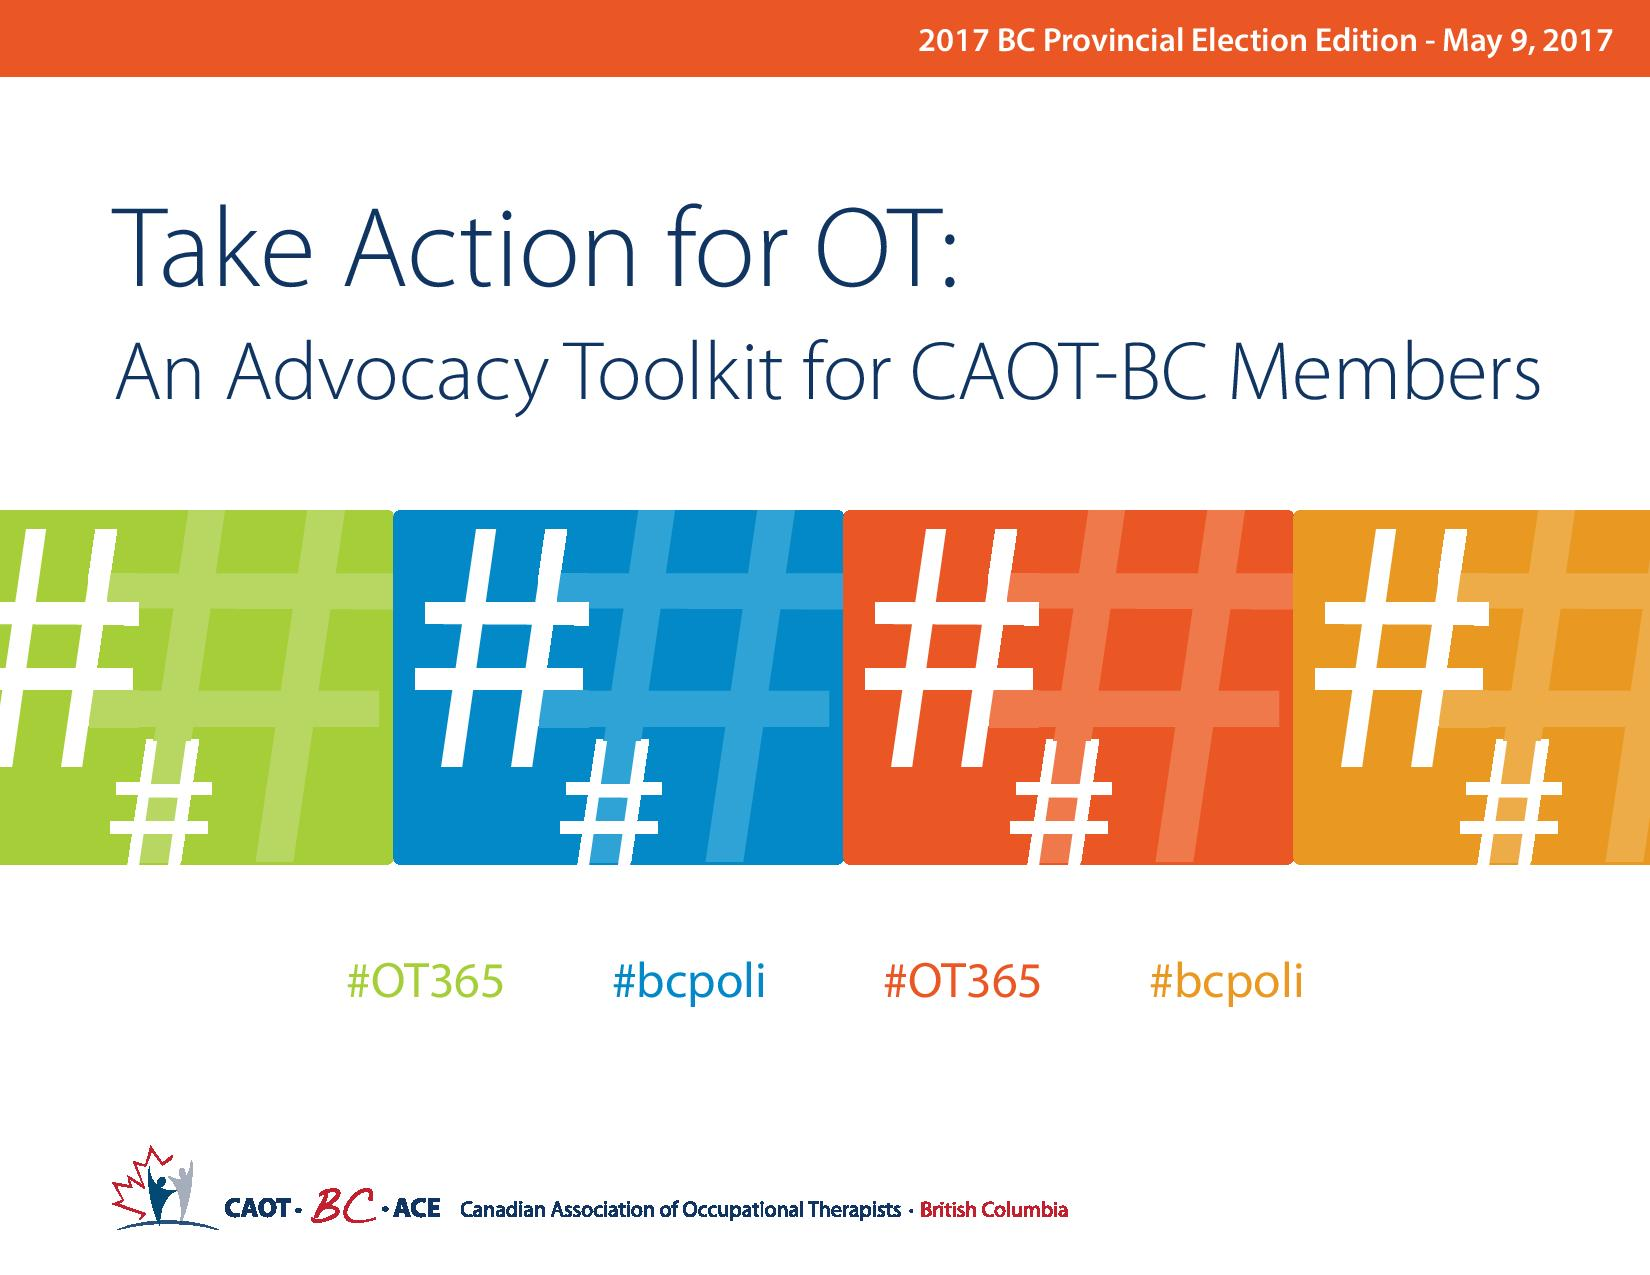 Take Action for OT Front Page